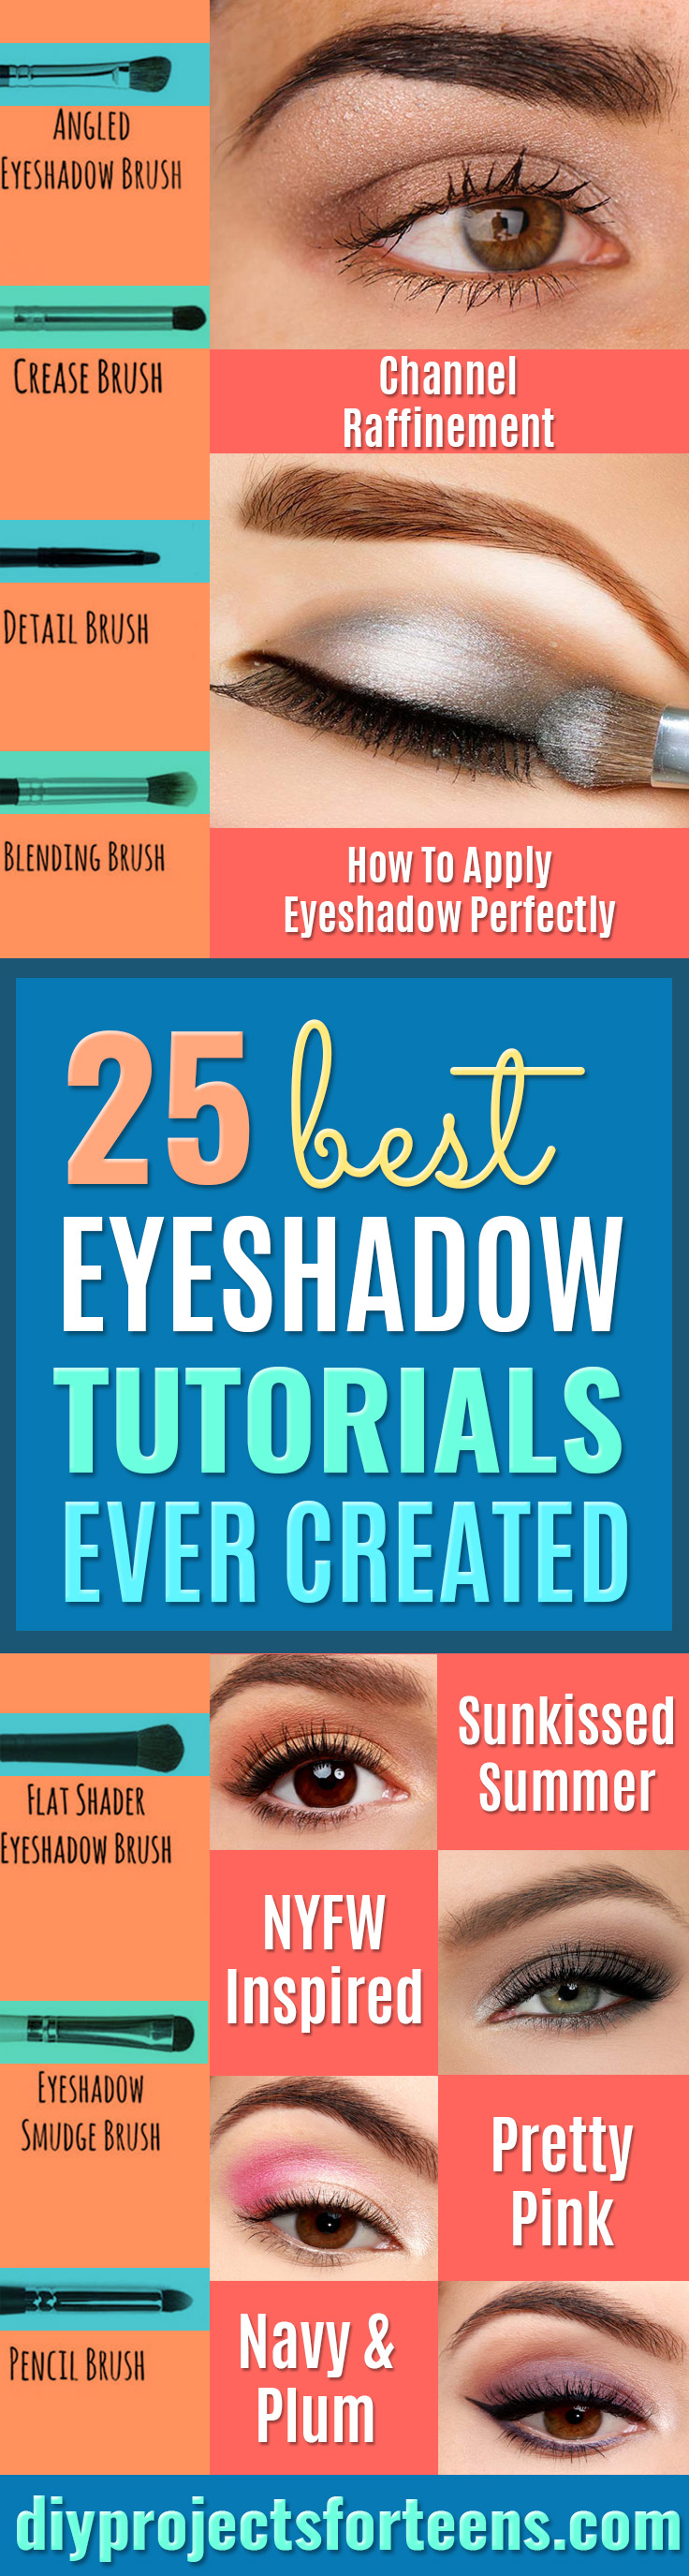 Best Eyeshadow Tutorials - Easy Step by Step How To For Eye Shadow - Cool Makeup Tricks and Eye Makeup Tutorial With Instructions - Quick Ways to Do Smoky Eye, Natural Makeup, Looks for Day and Evening, Brown and Blue Eyes - Cool Ideas for Beginners and Teens http://diyprojectsforteens.com/best-eyeshadow-tutorials